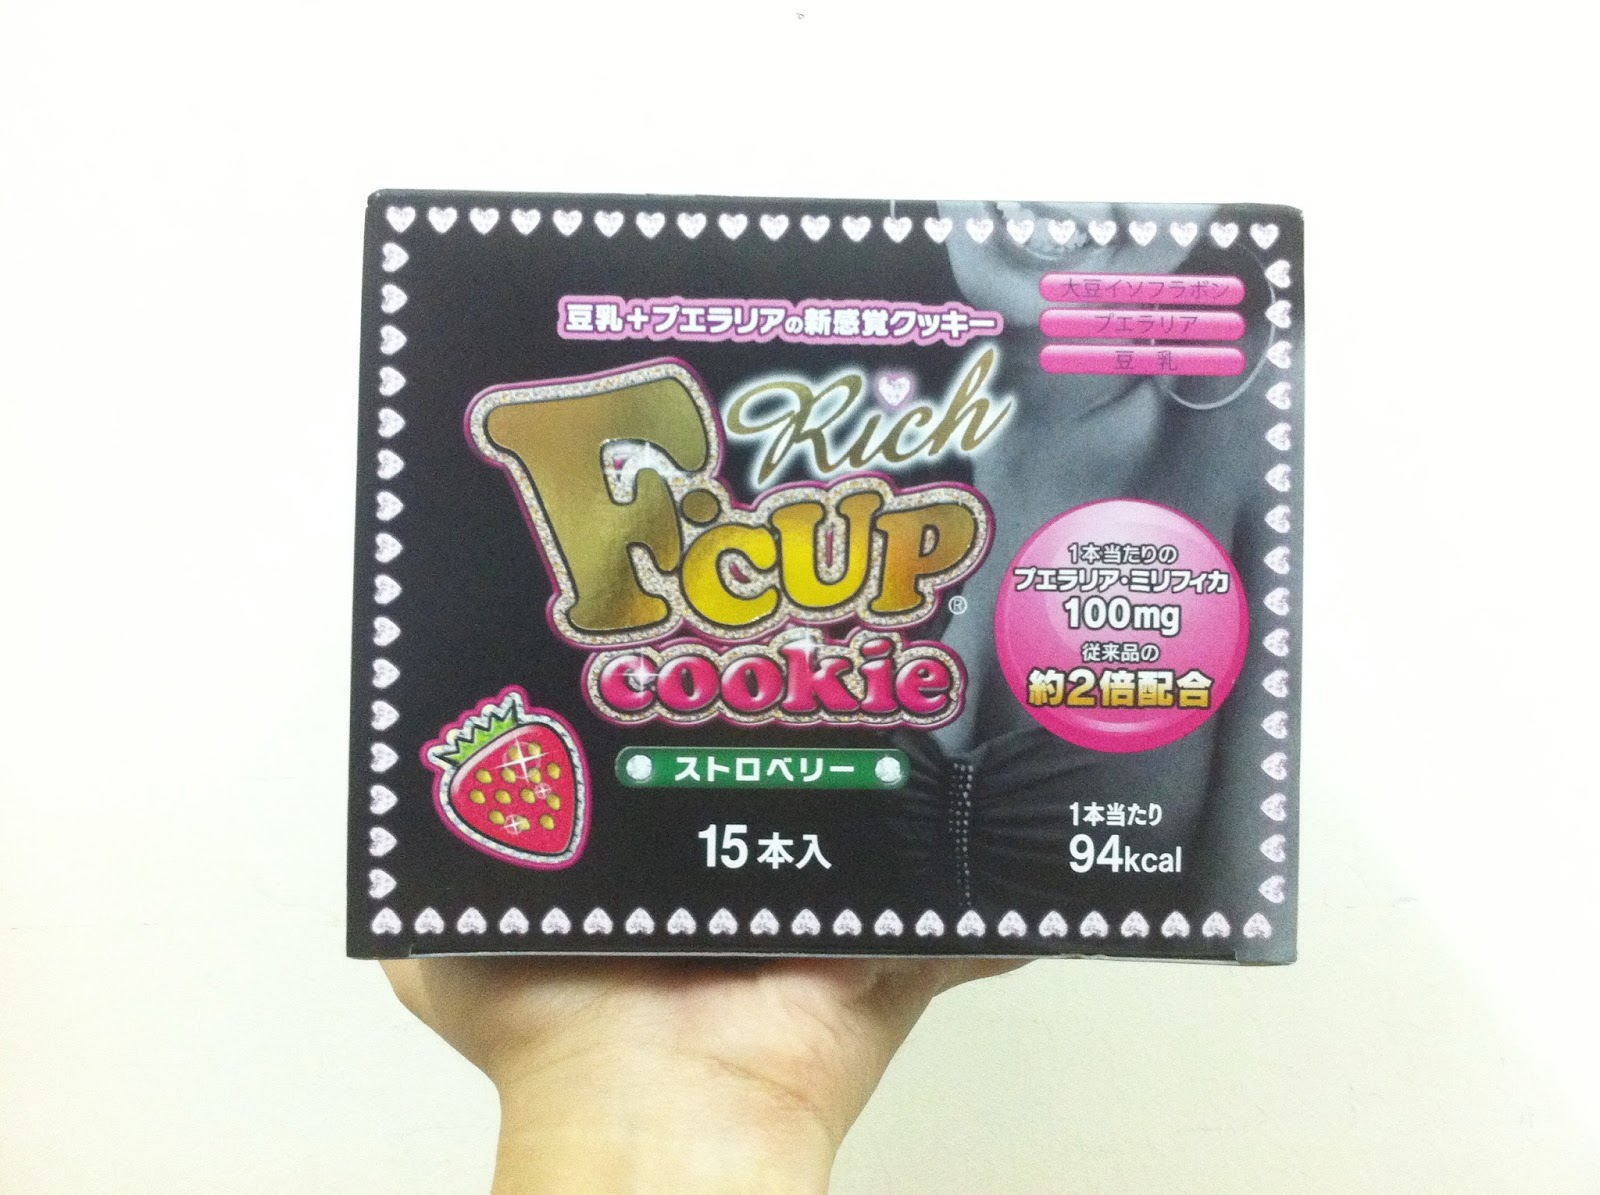 f cup cookie review , f cup cookie